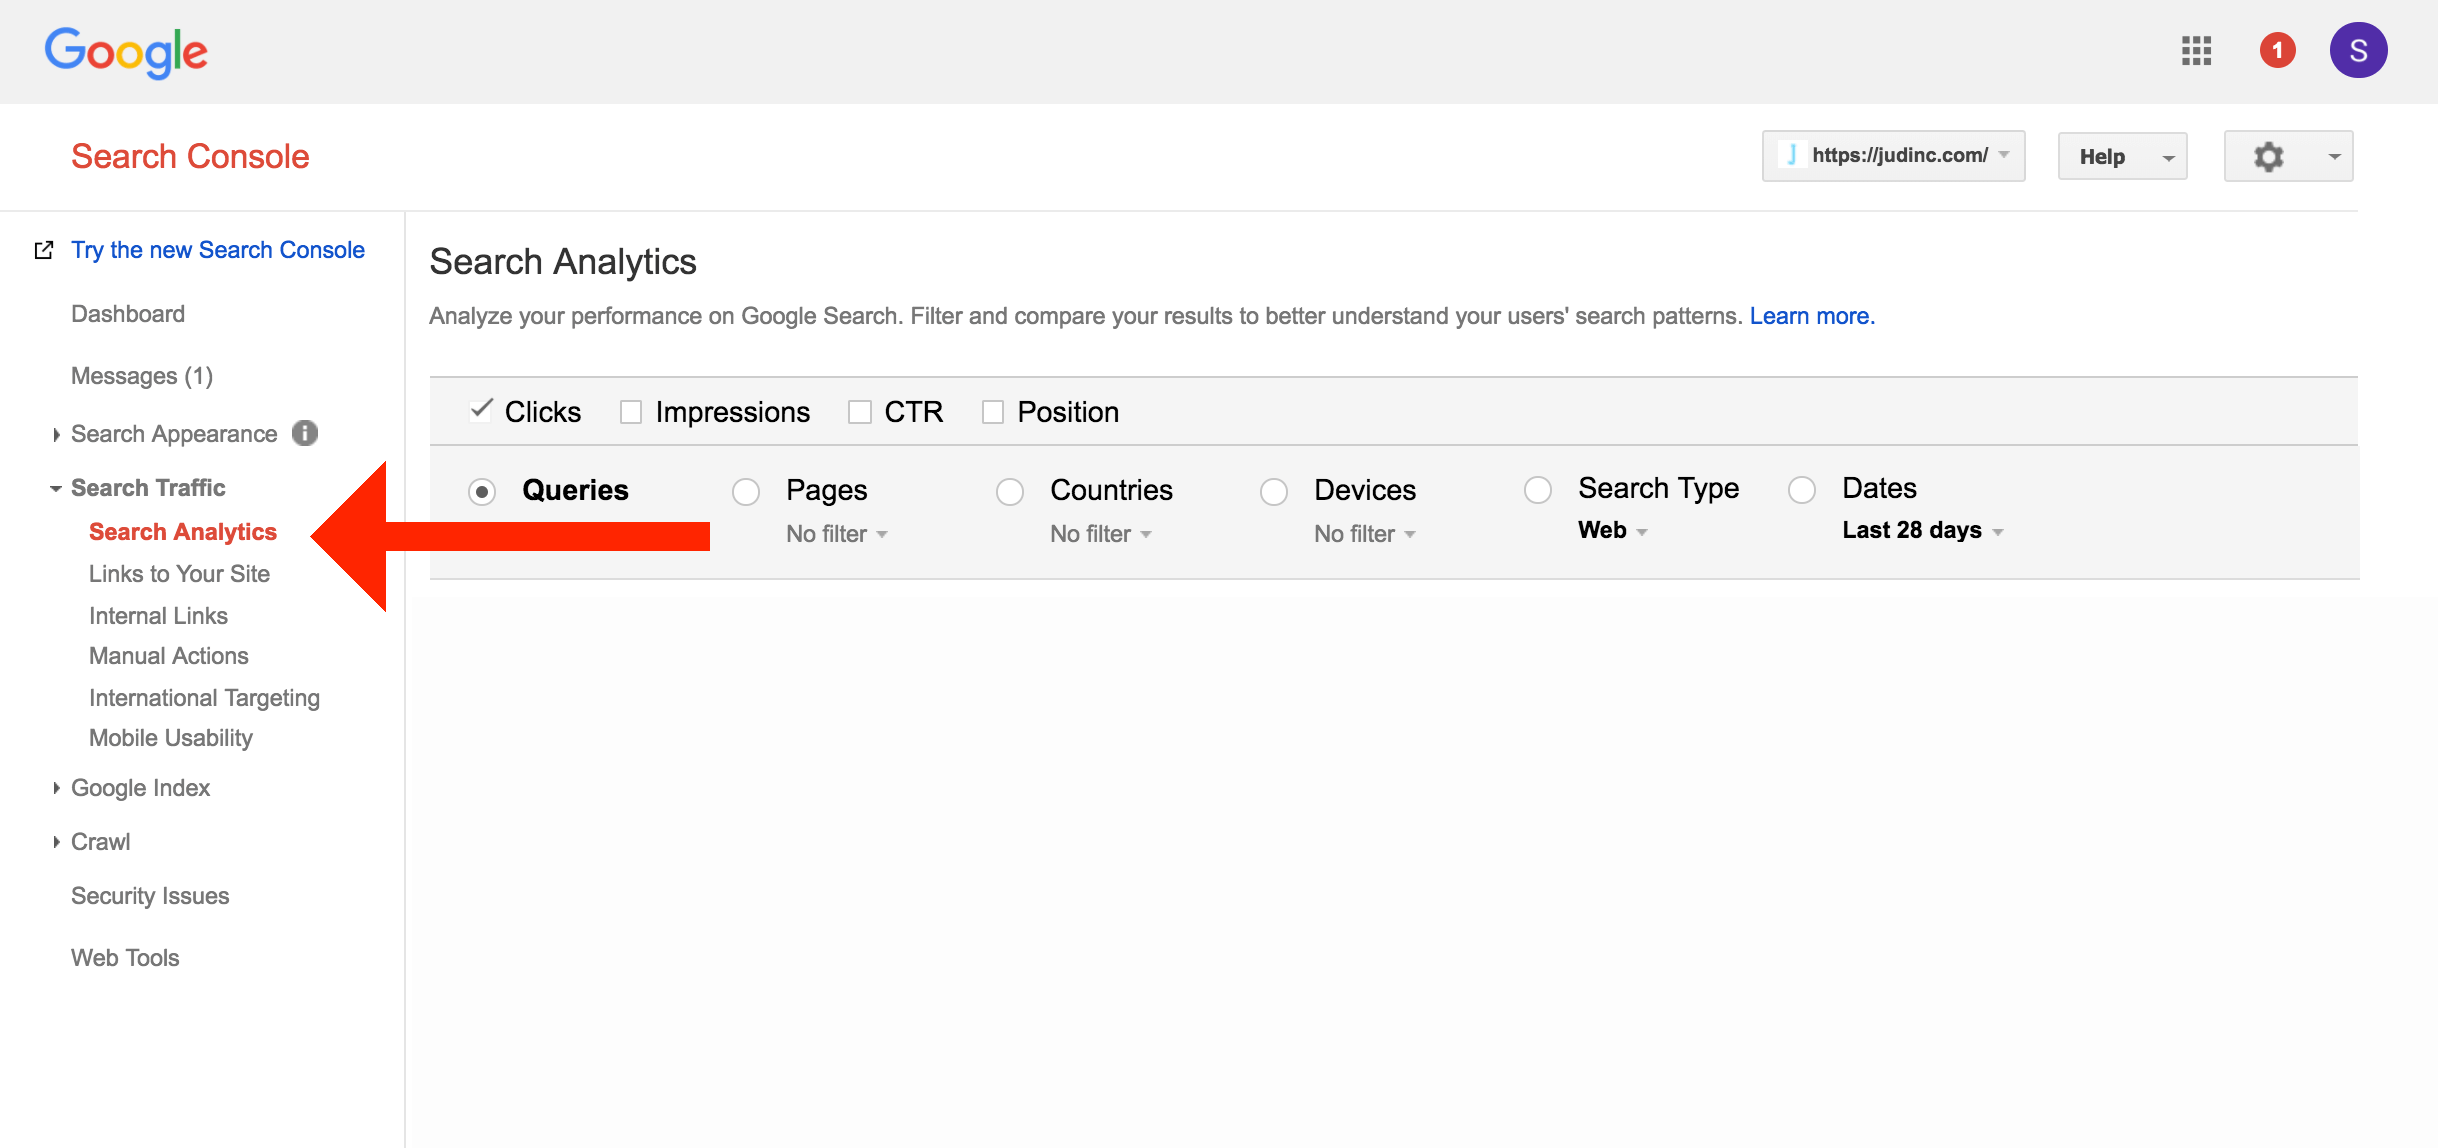 google search console search analytics customer keywords